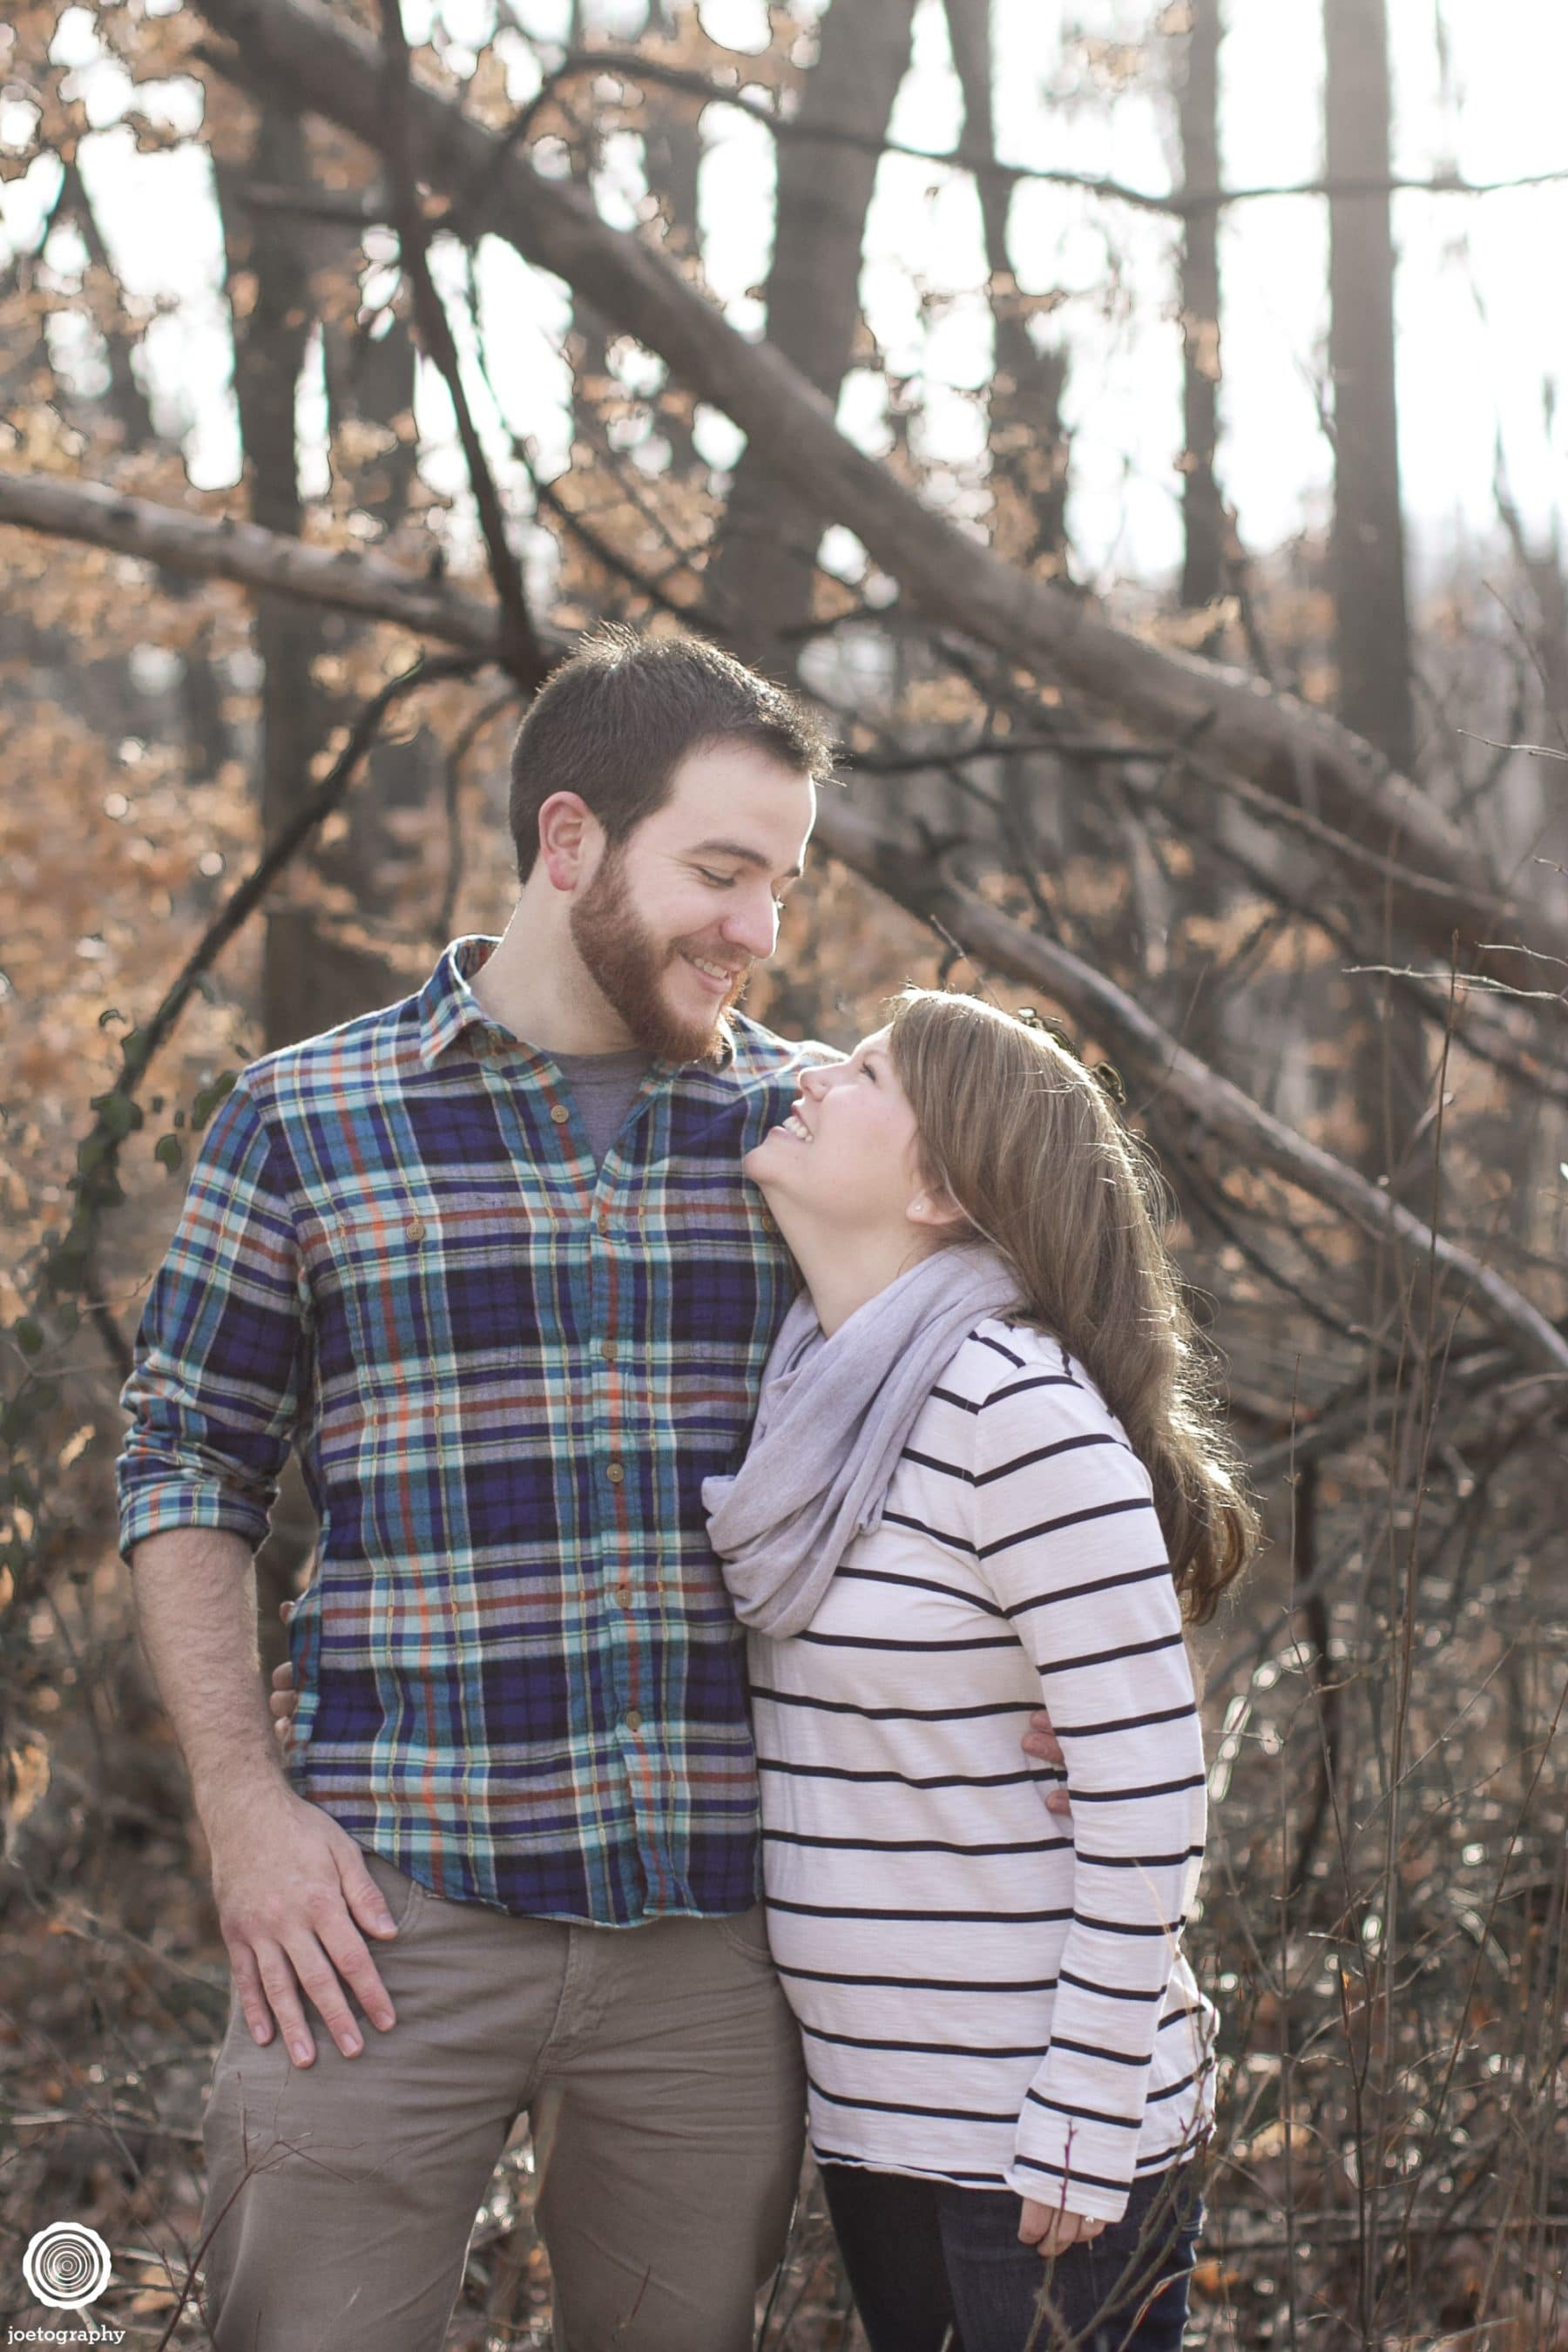 ruetz-maternity-photo-session-broad-ripple-10